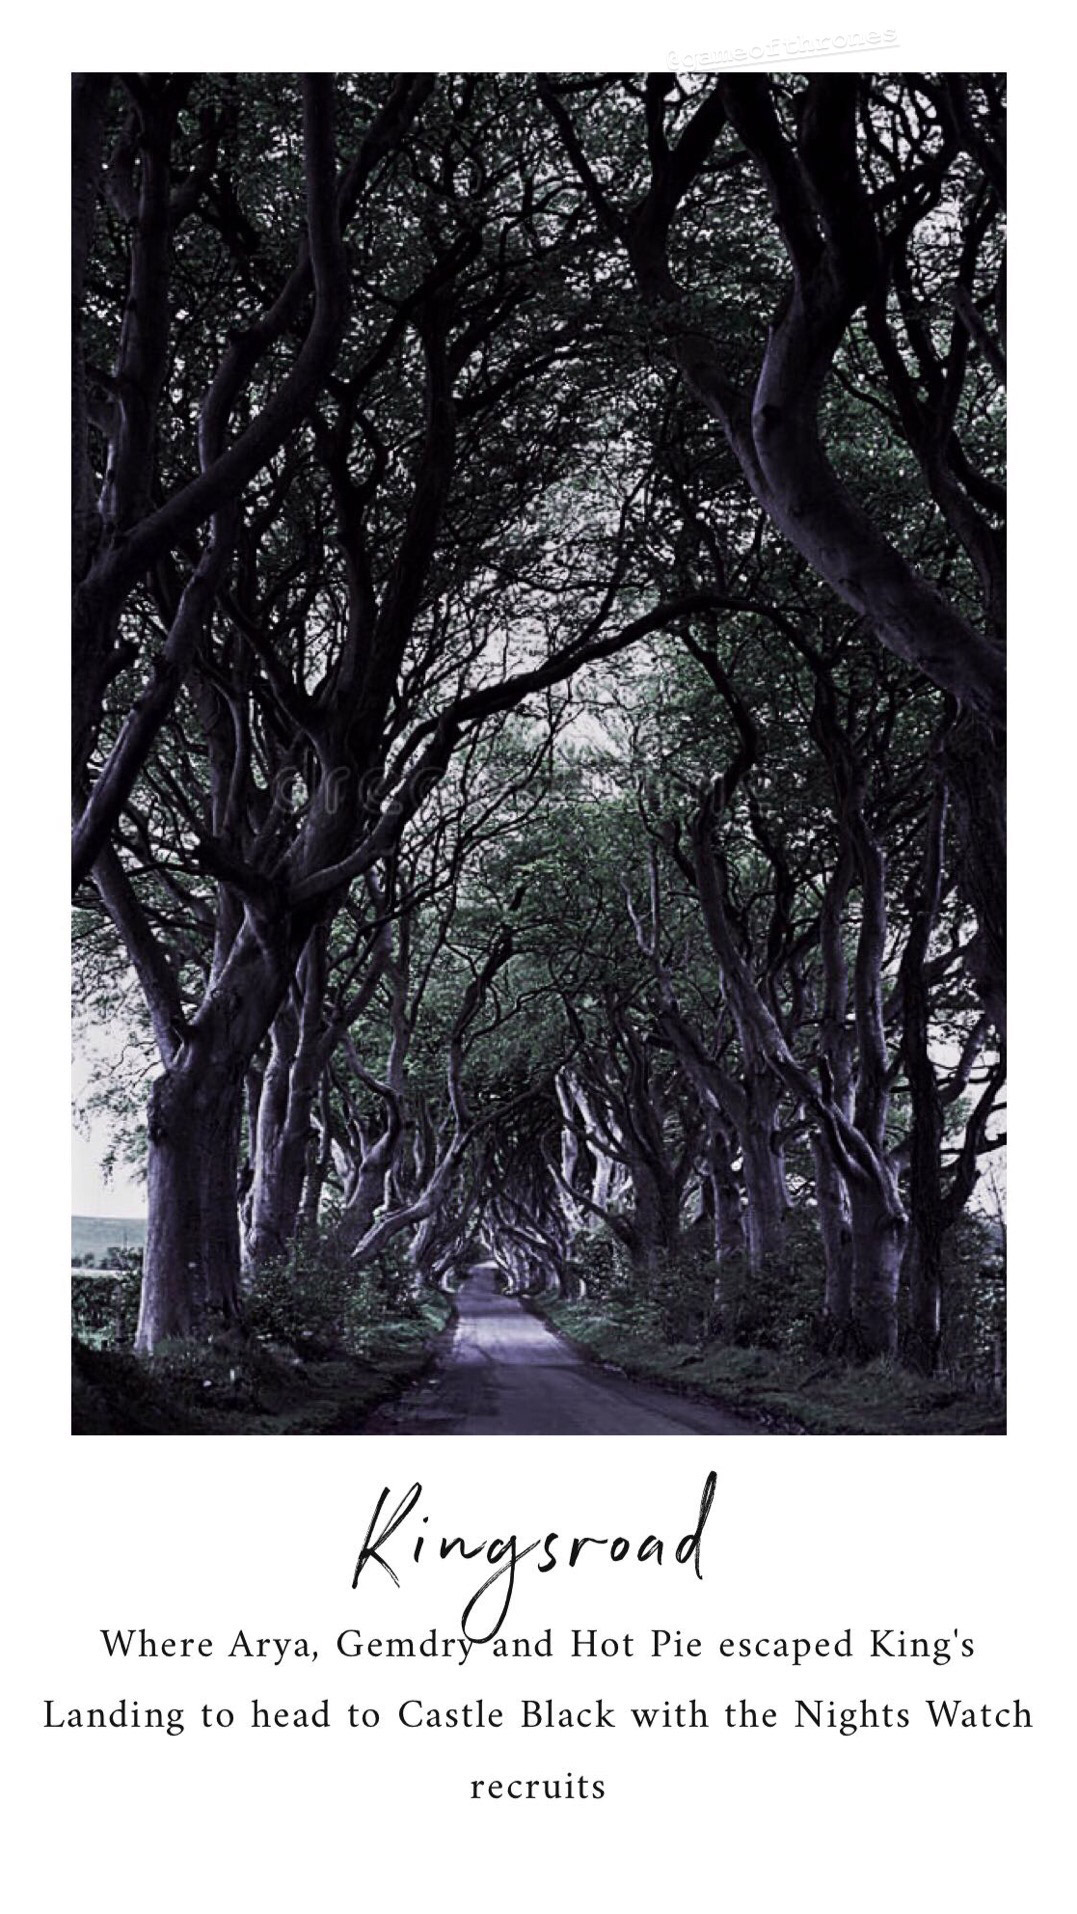 Winter is coming. And so is the last season of HBO's hit show, Game of Thrones. Of course I had to do the Game of Thrones tour in Ireland on a recent trip.